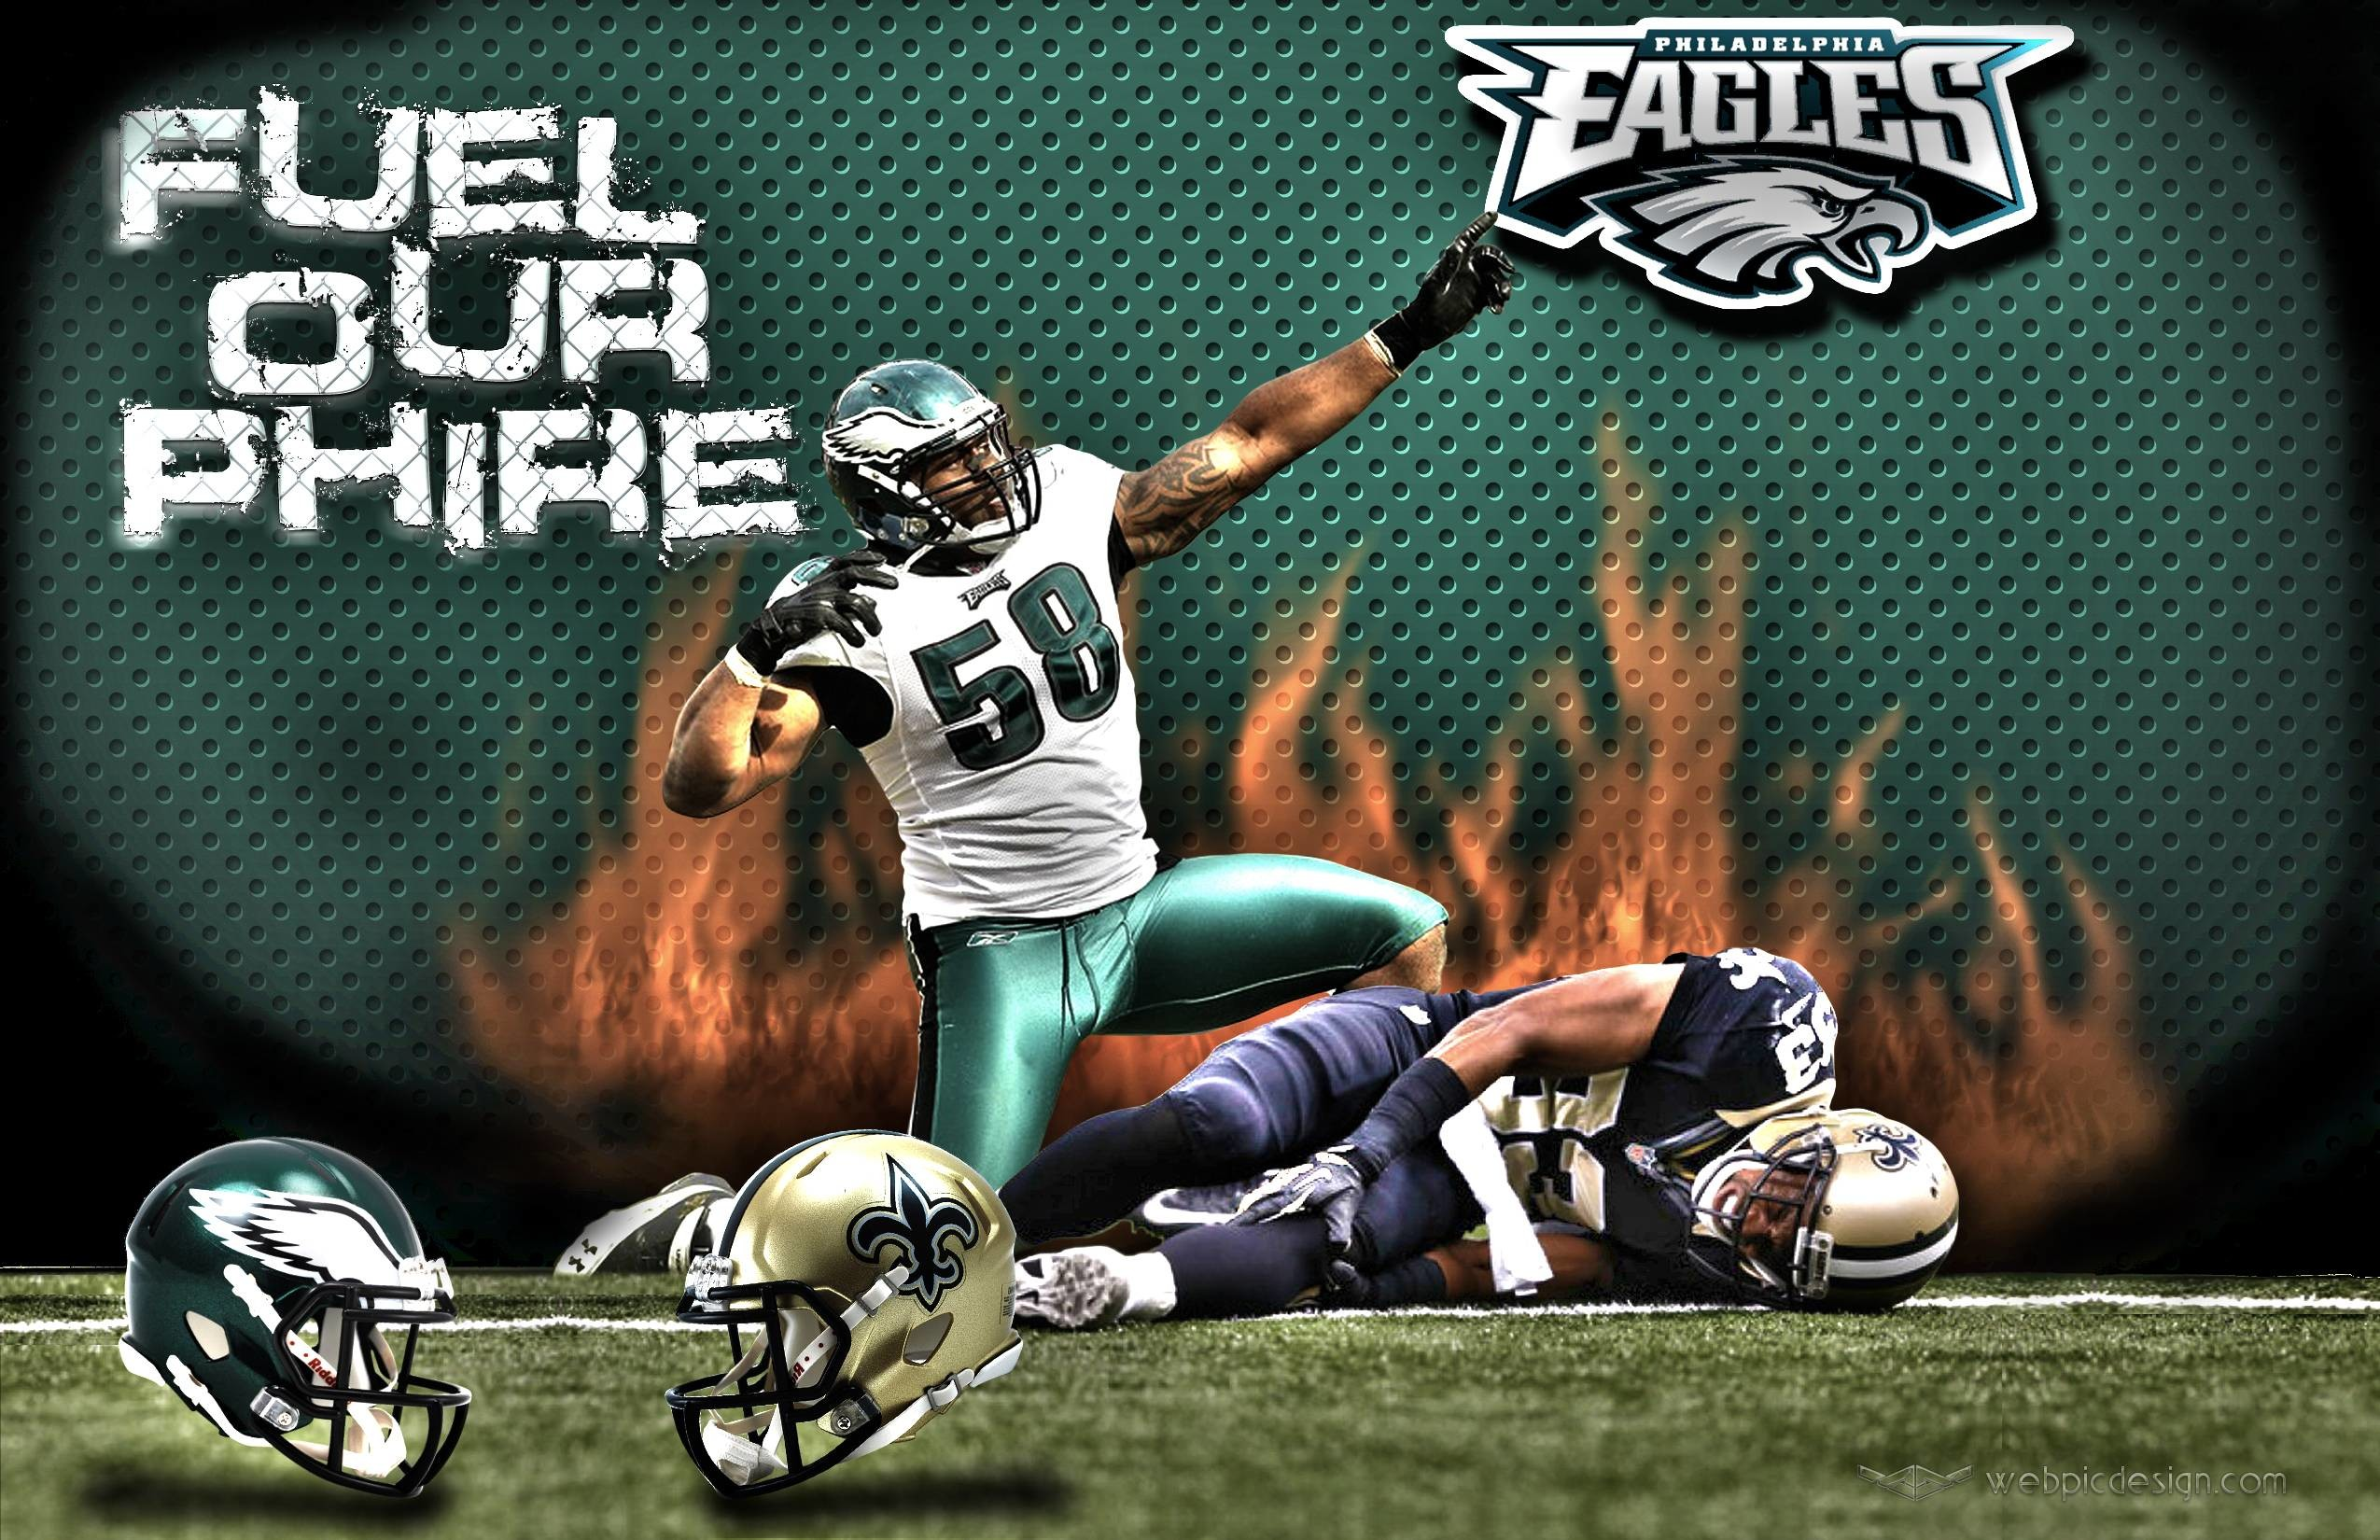 2550x1650 Philadelphia Eagles New Orleans Saints Wallpaper Webpic Design Inc ..